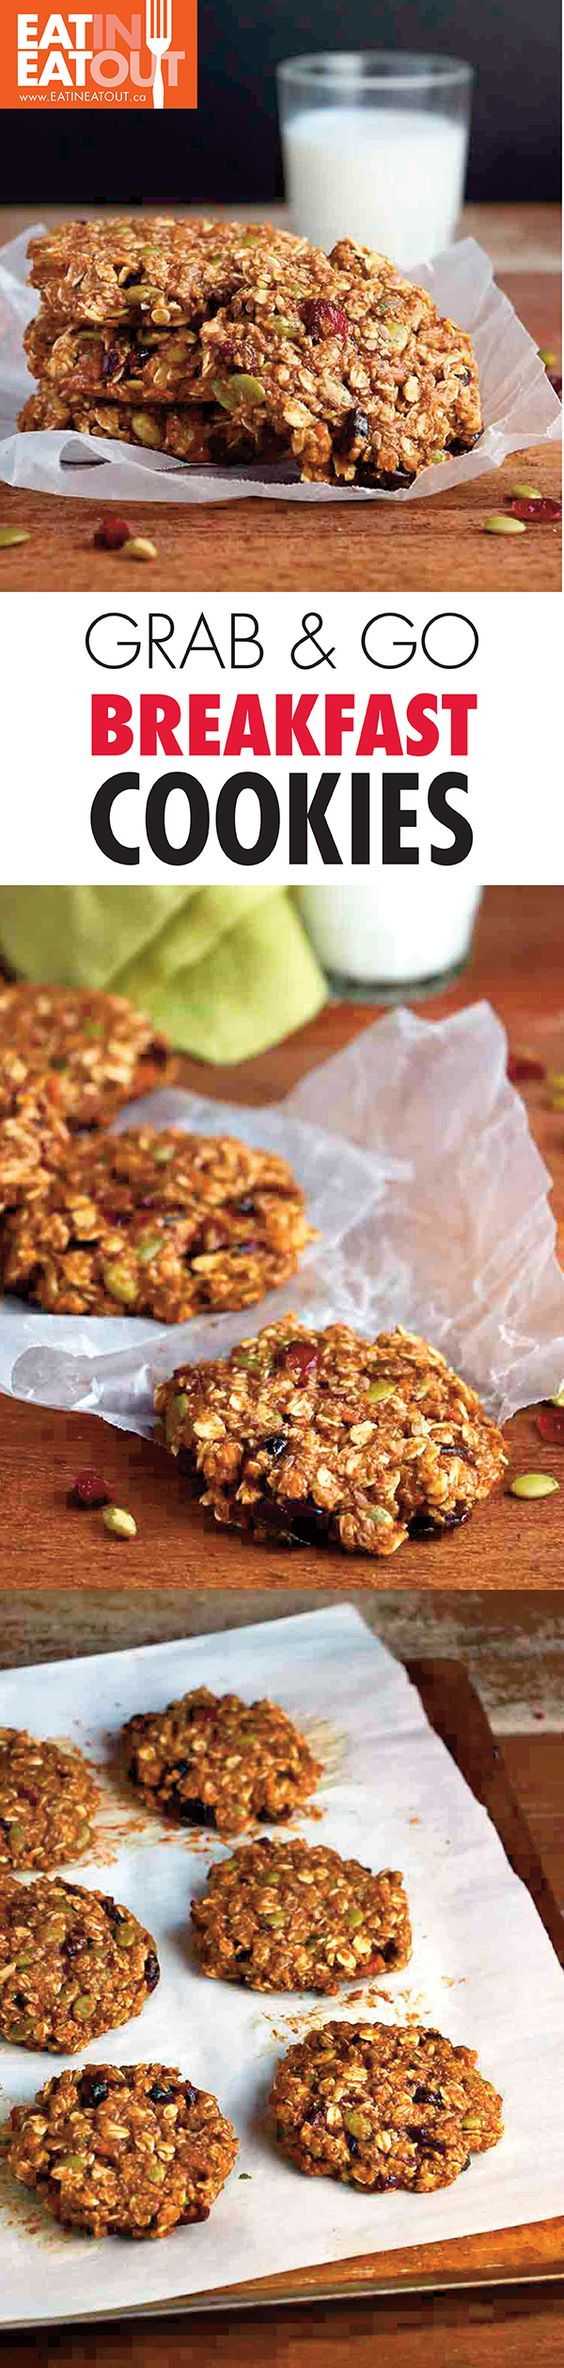 Healthy breakfast when you just have to grab it and go!  Use trivia brown sugar to lighten it up